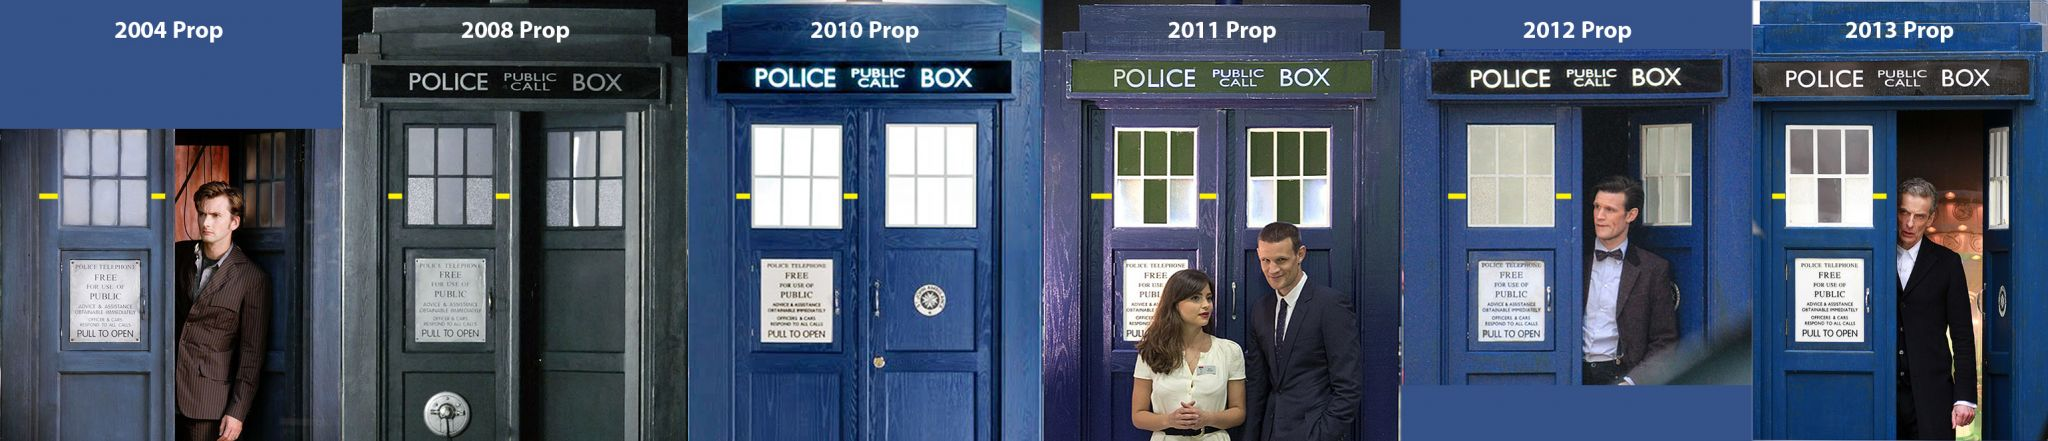 New Series TARDIS Front Doors Comparison.jpg